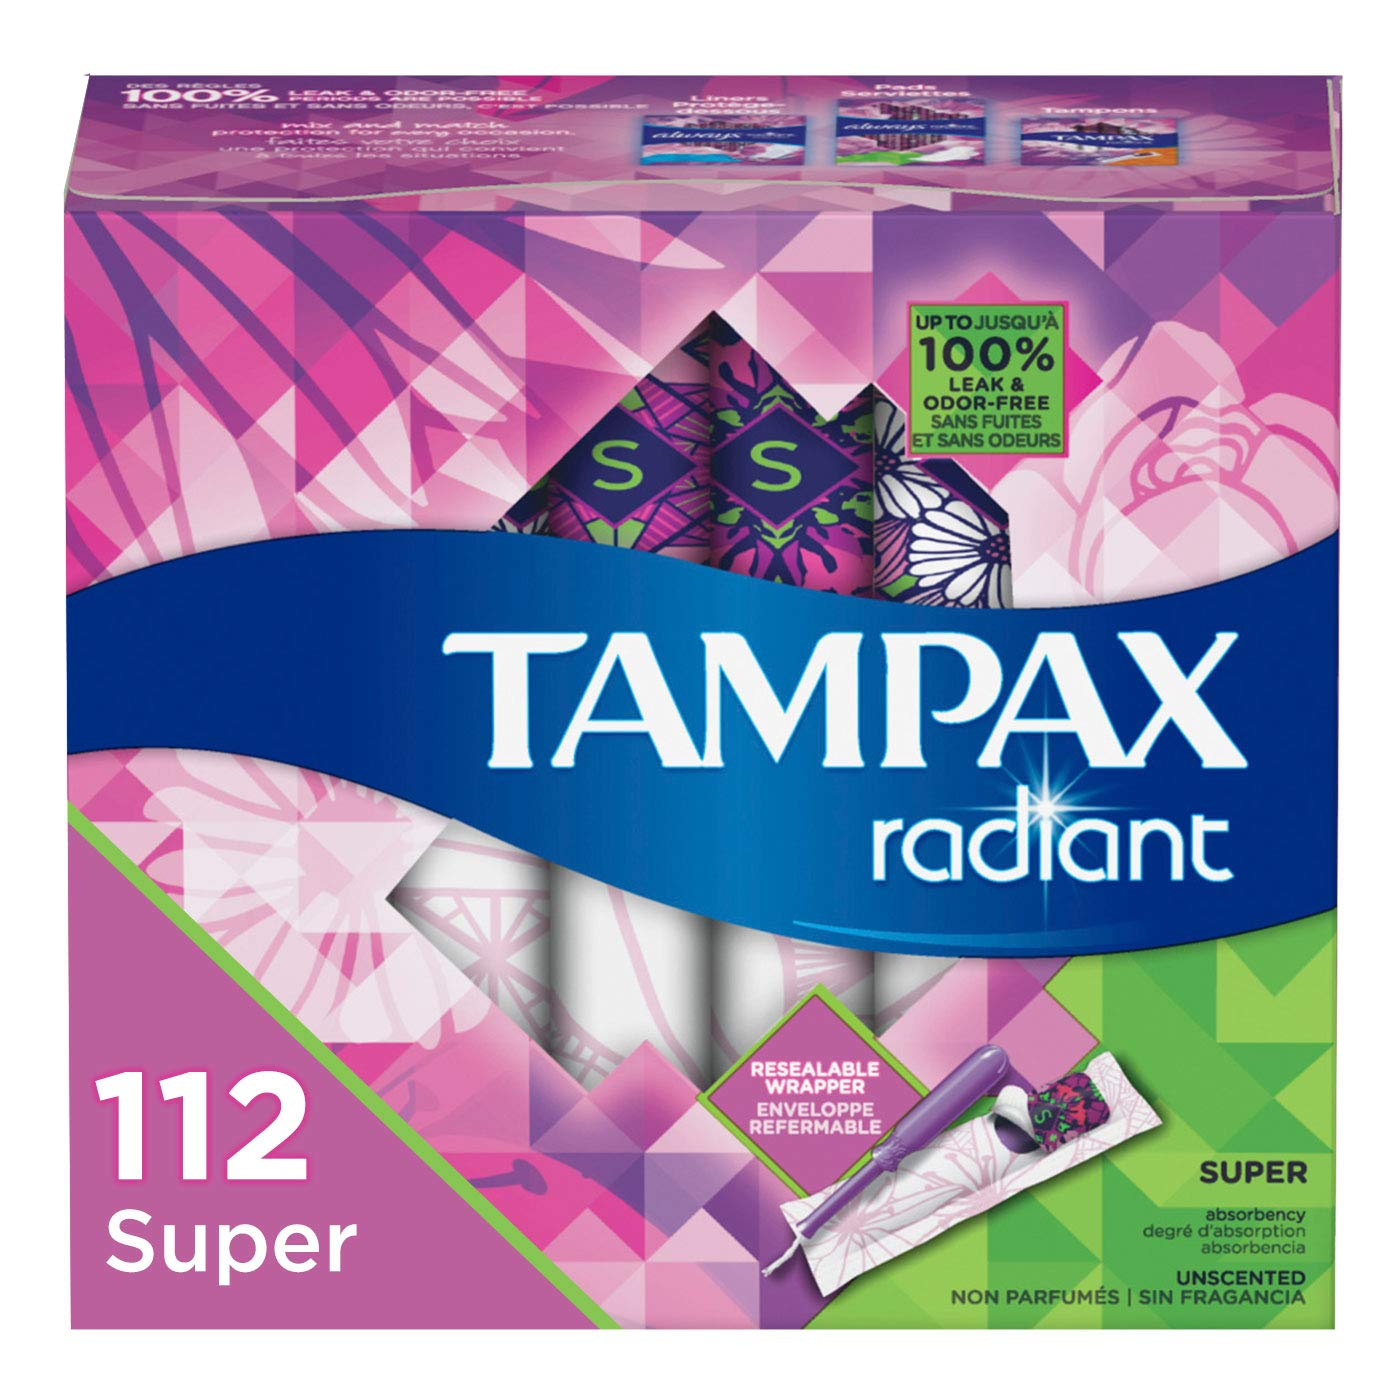 Tampax Radiant Plastic Tampons, Super Absorbency, Unscented, 28 Count (Pack of 4) (Packaging May Vary) by Tampax